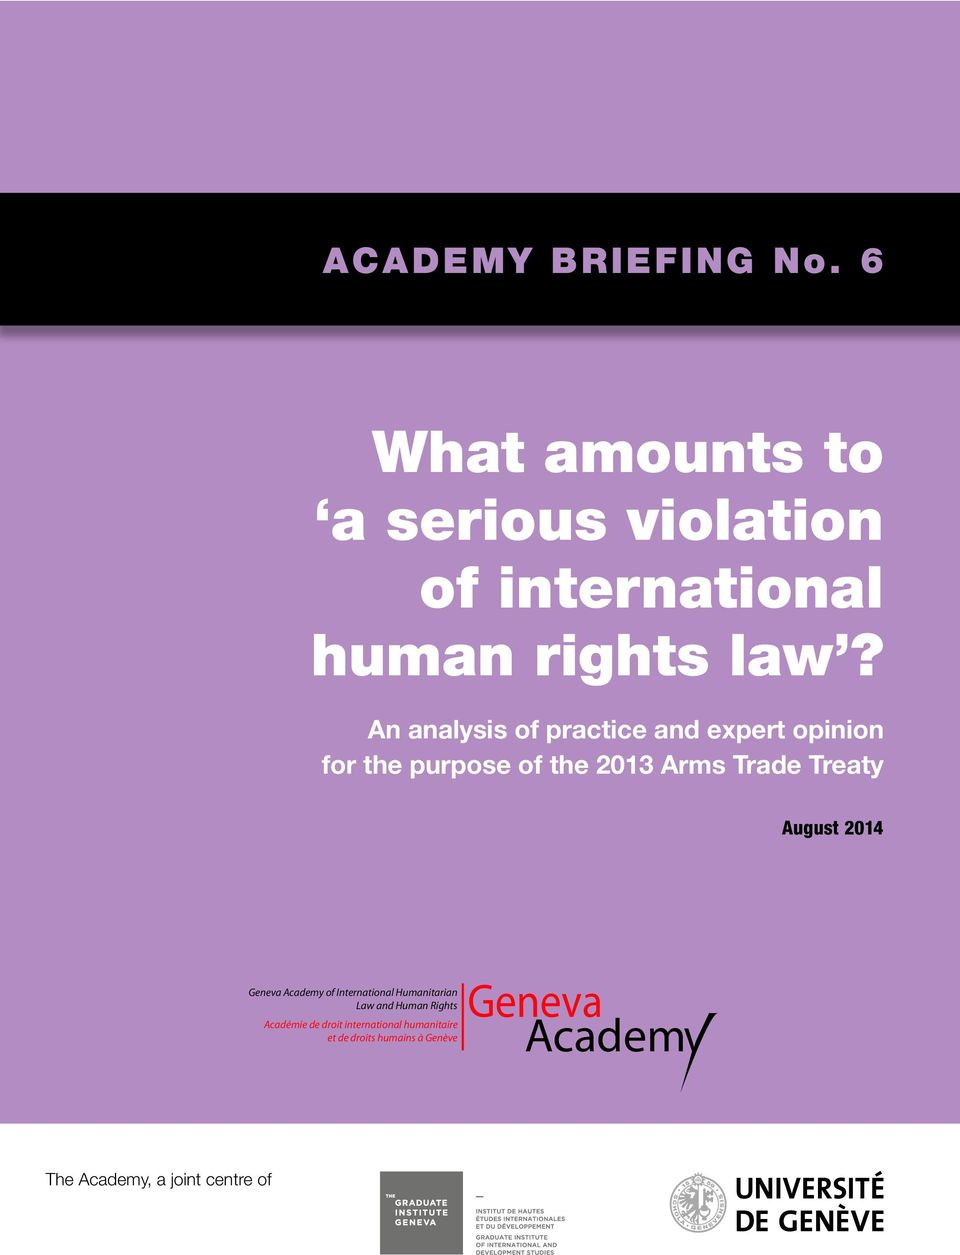 An analysis of practice and expert opinion for the purpose of the 2013 Arms Trade Treaty August 2014